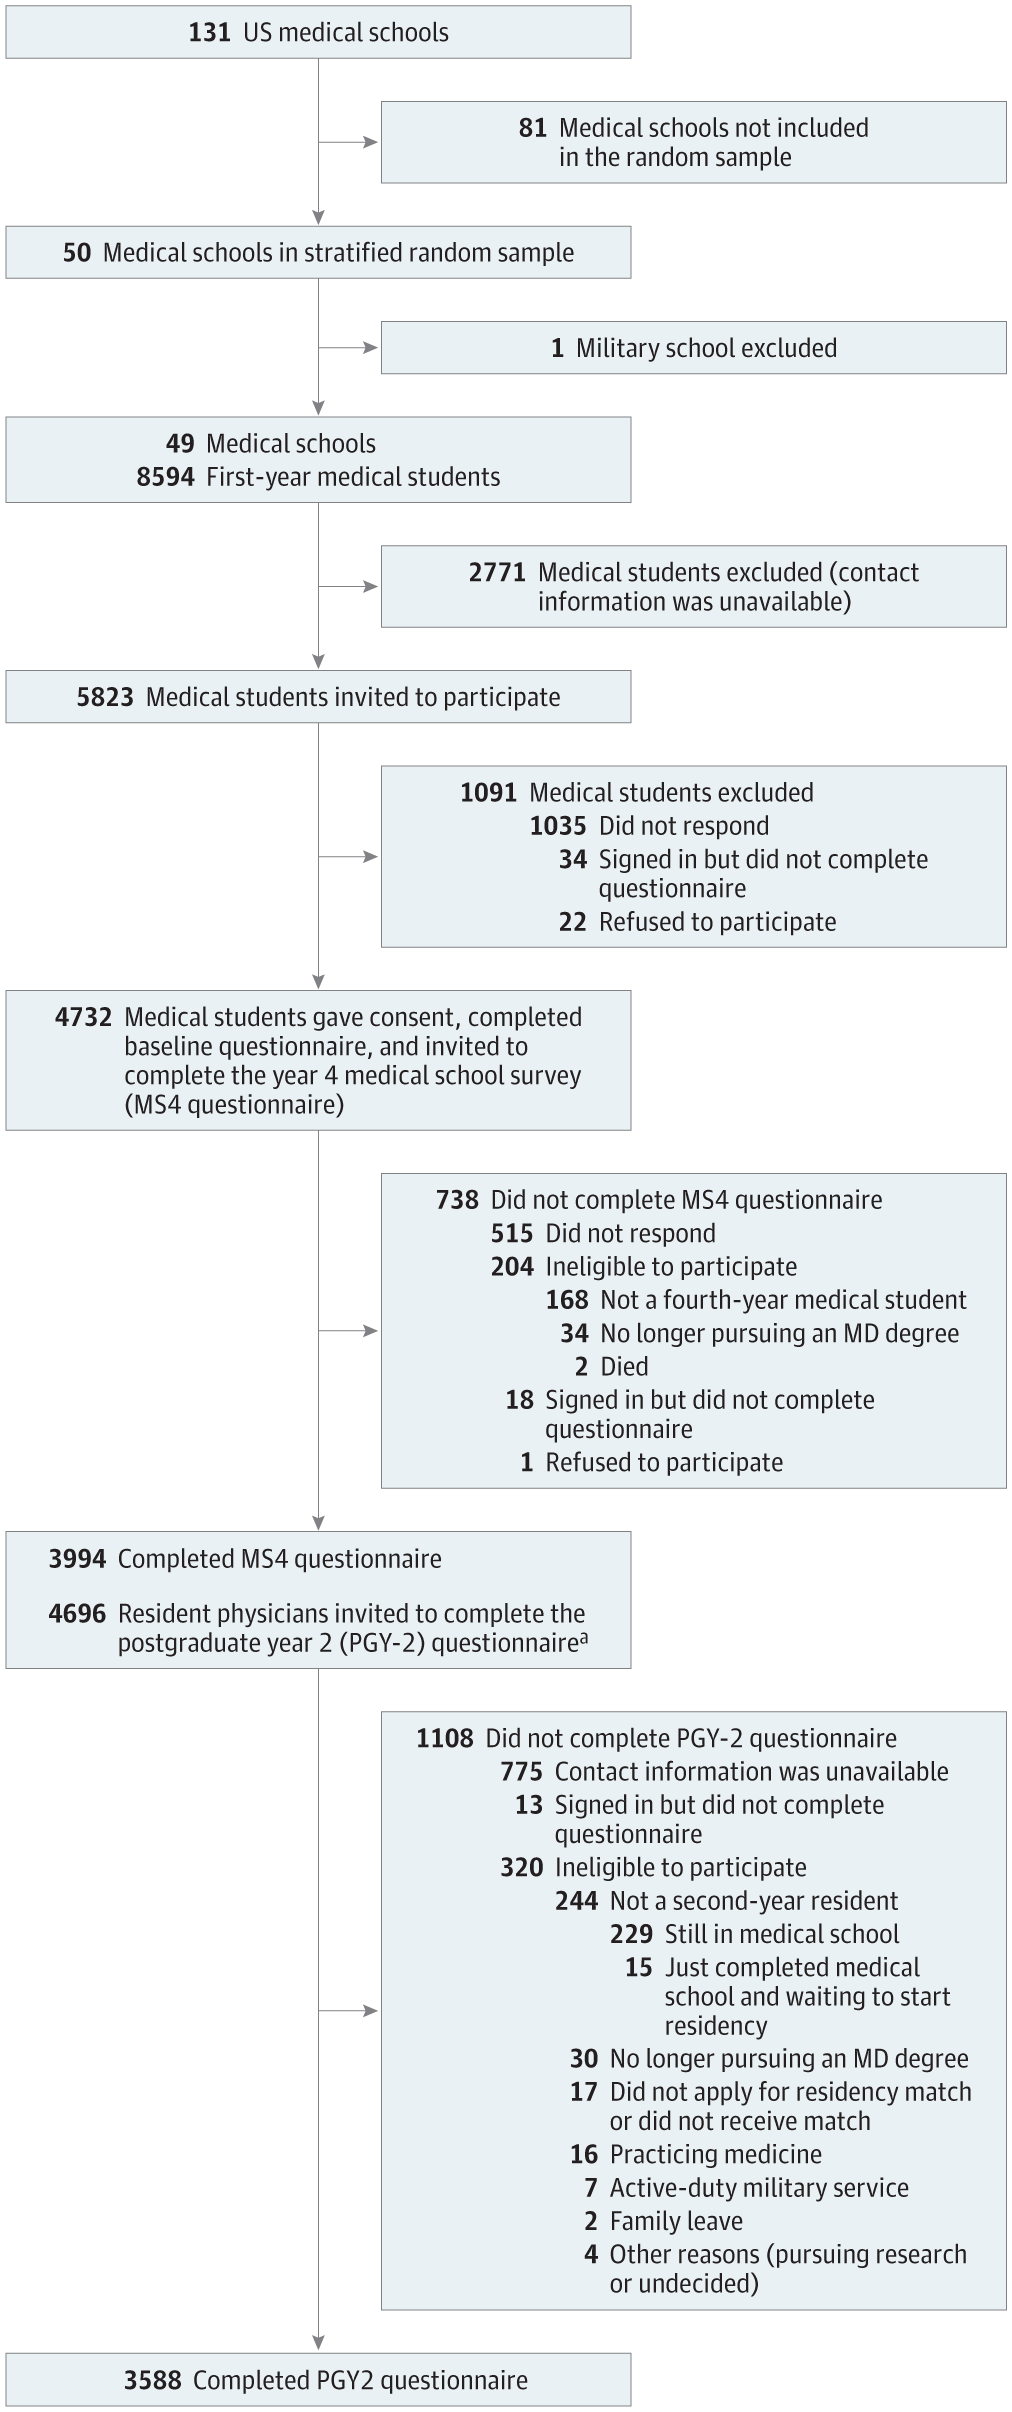 Association of Clinical Specialty With Symptoms of Burnout